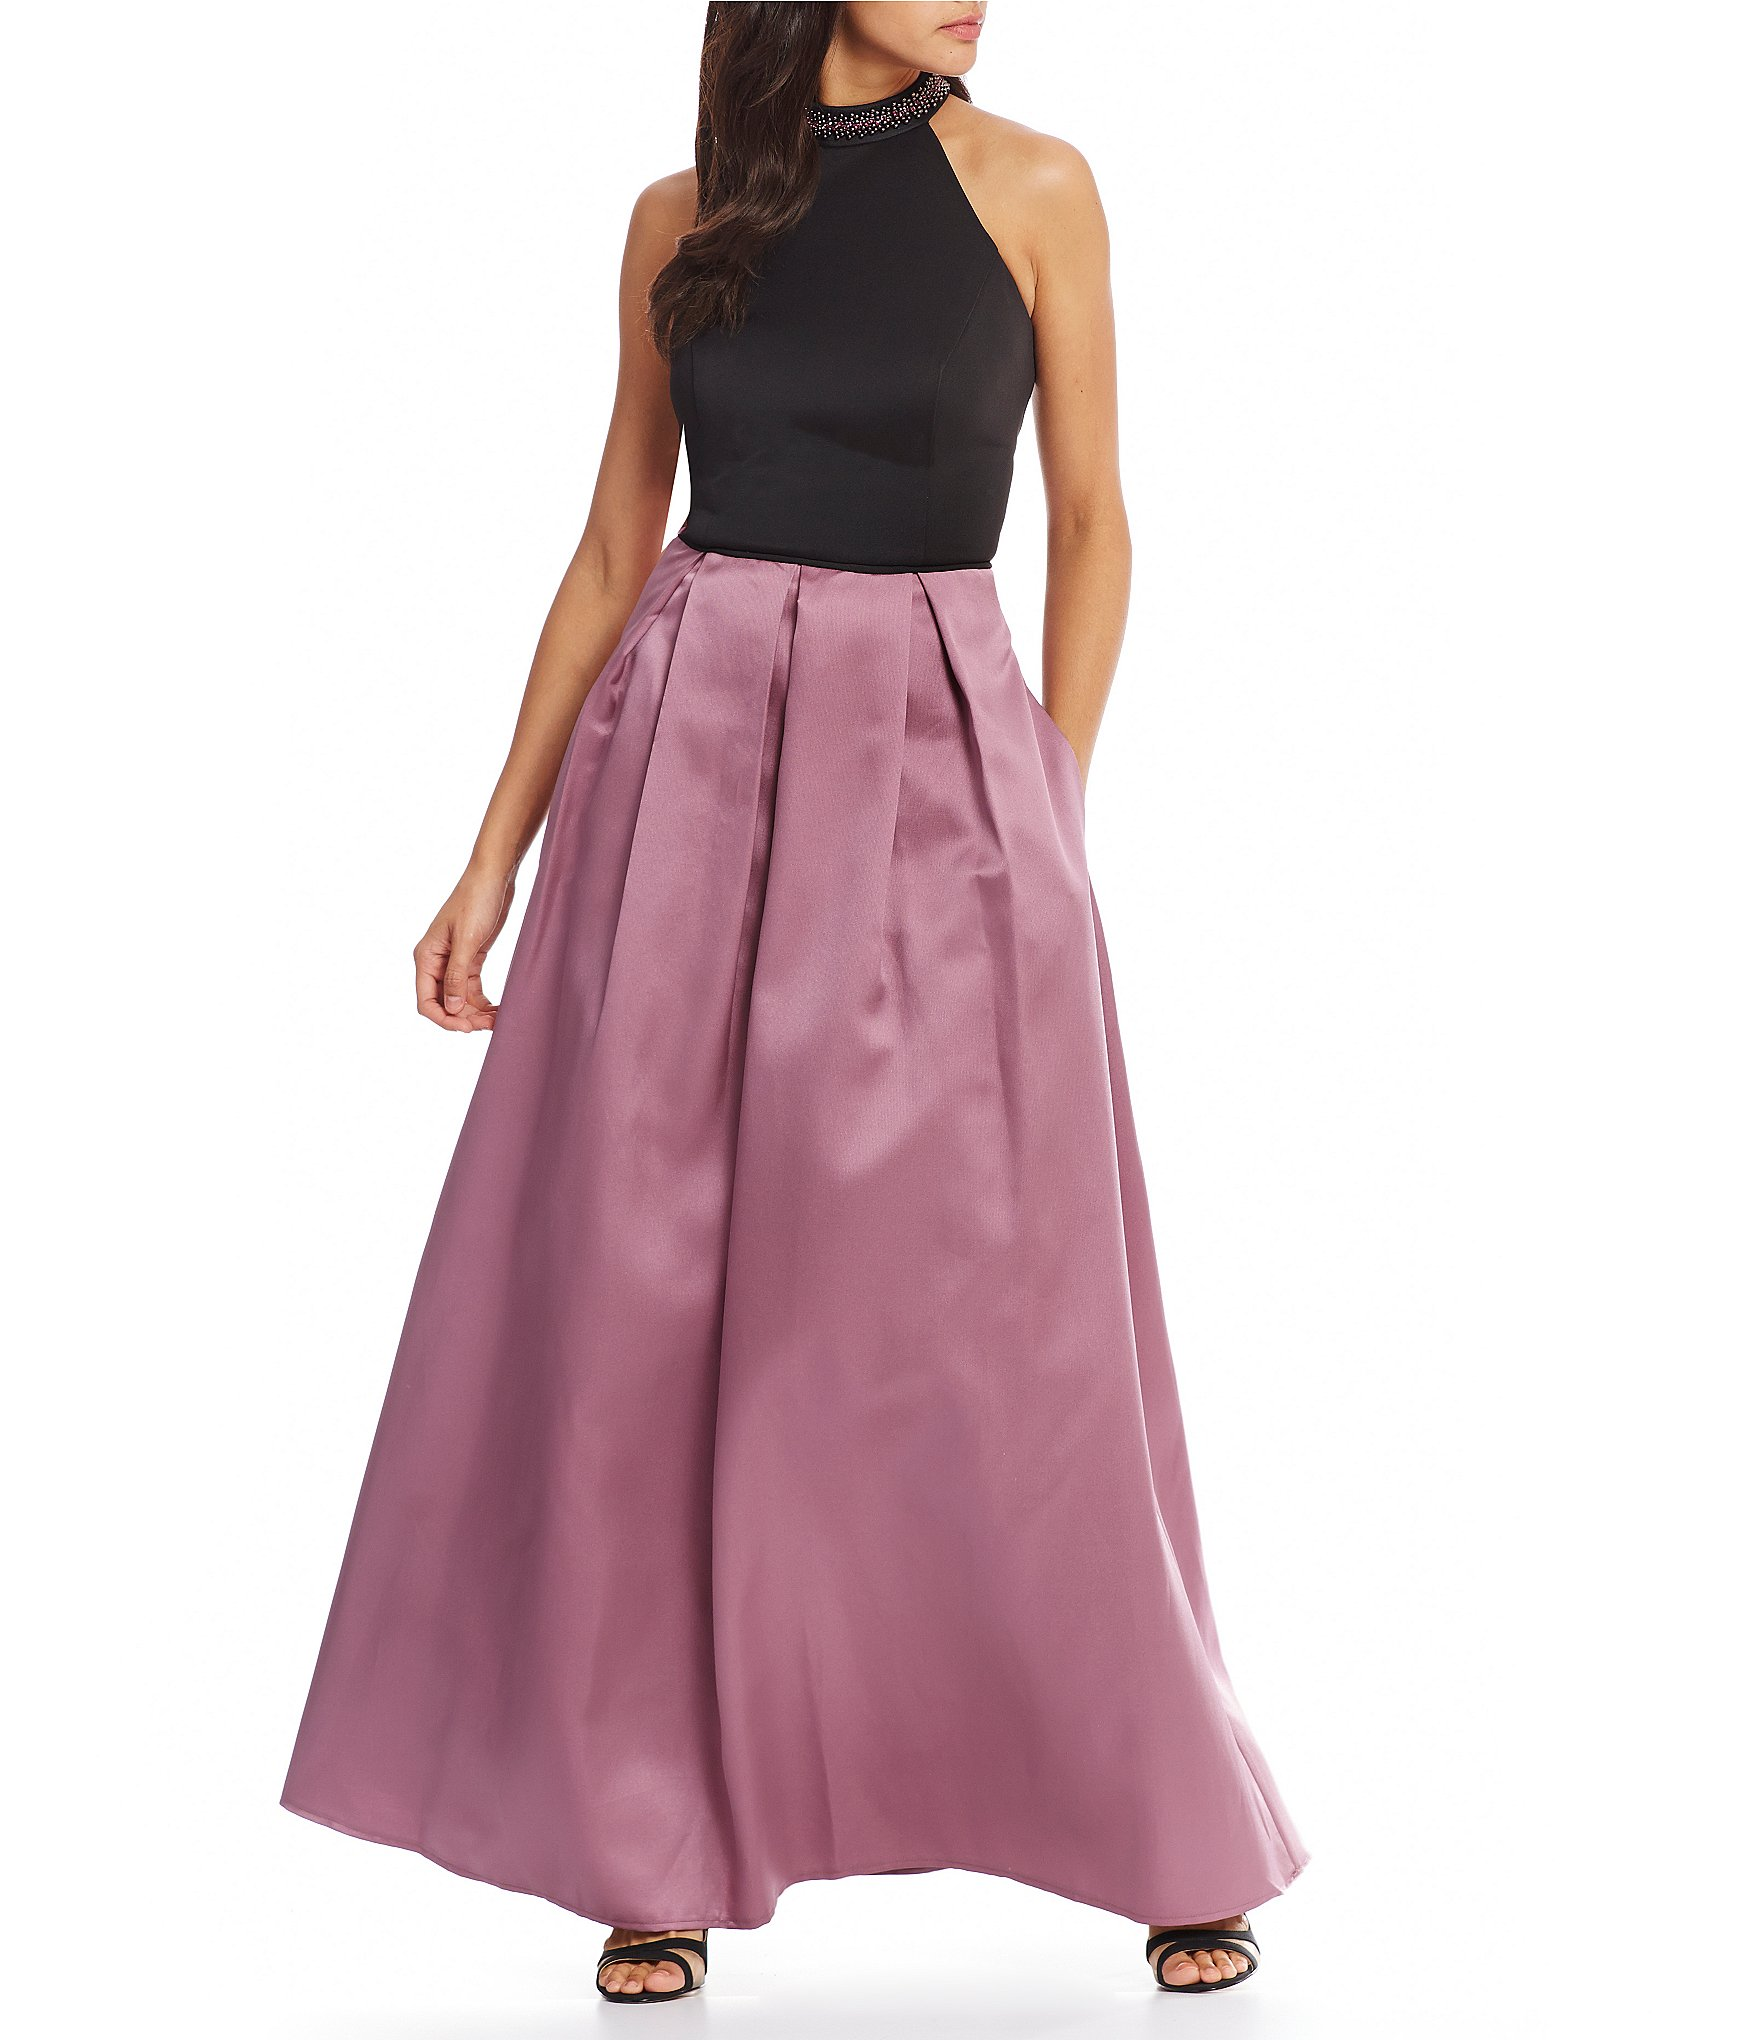 Elderberry wine color dress